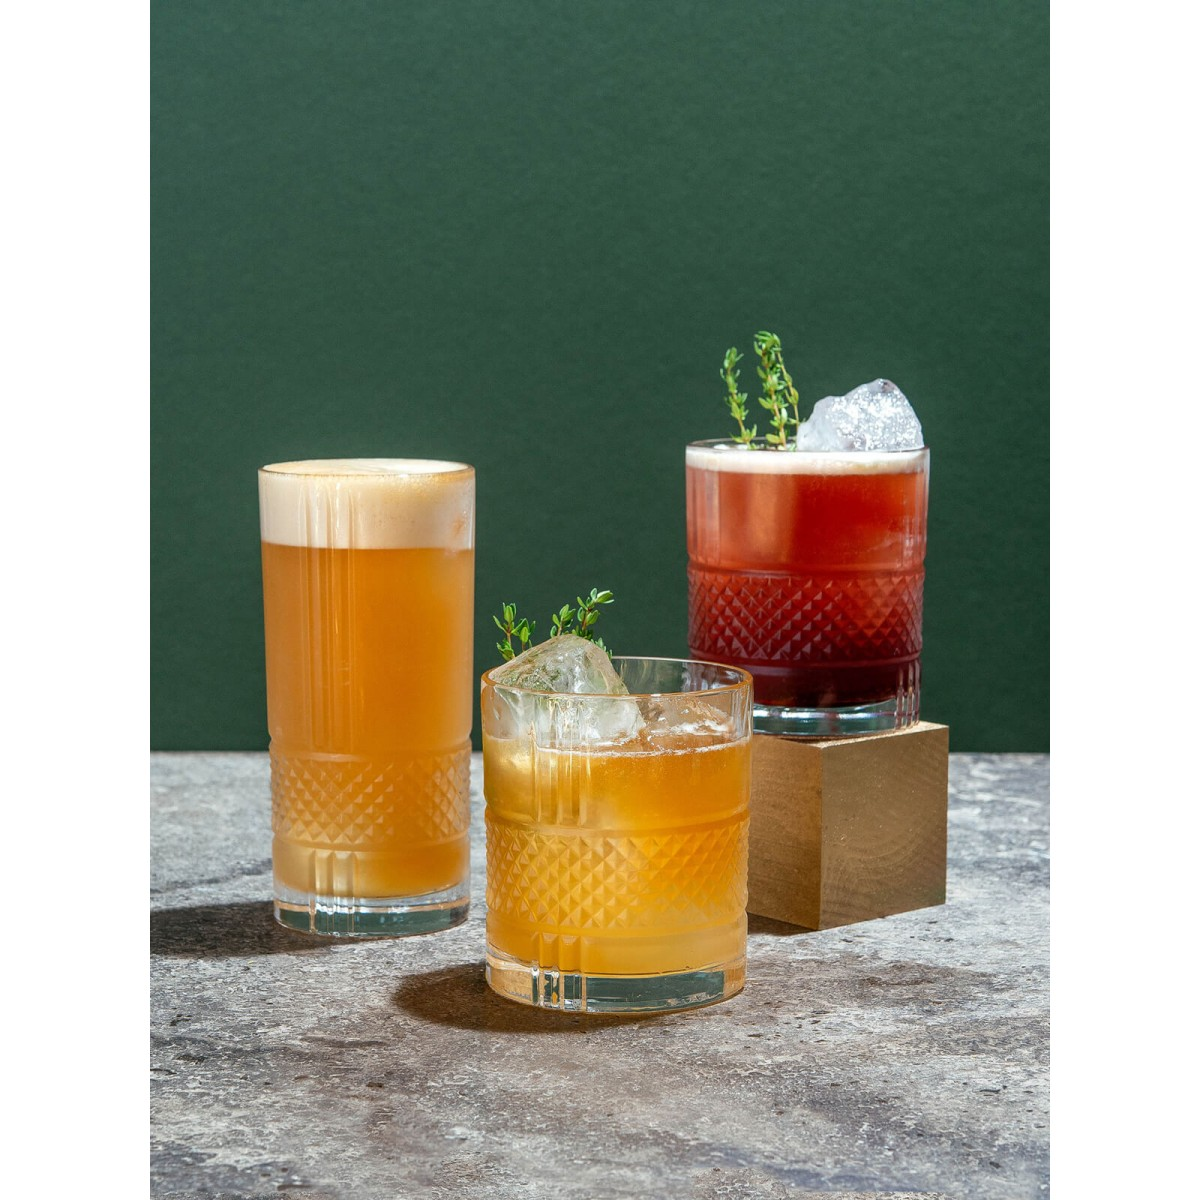 Bourbon Meets Craft Beer - Cocktail Set